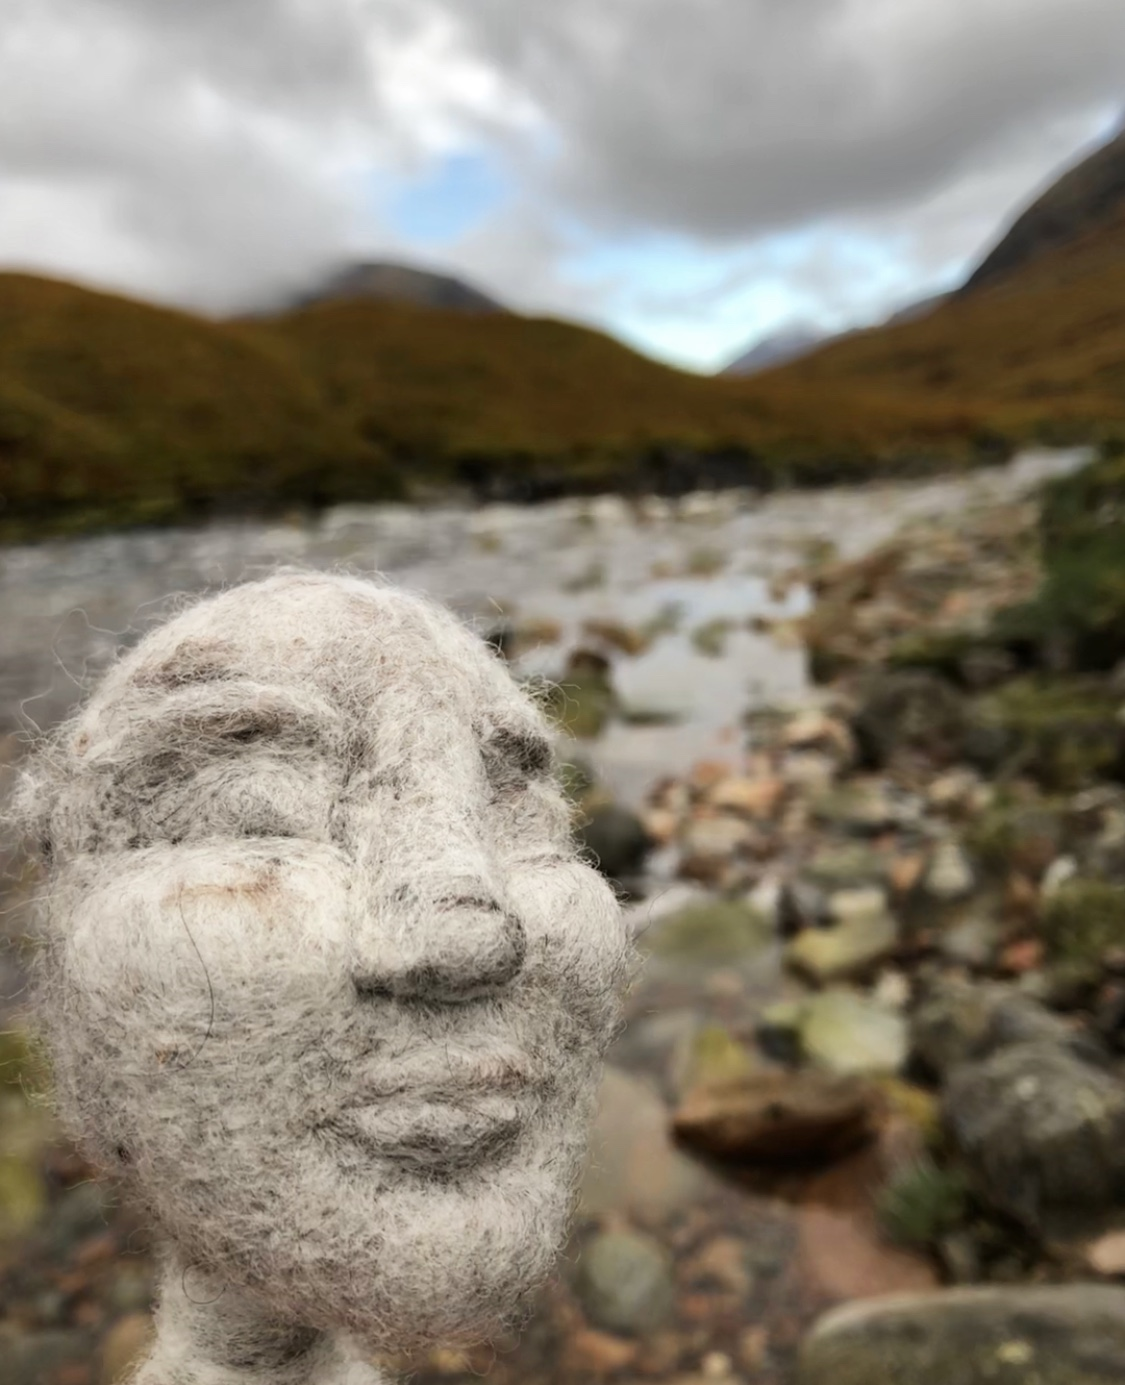 Scottish Dolls - I am currently creating dolls on the land in Scotland and Cornwall and will have new dolls to share with you when I return in November.  You can follow this doll making pilgrimage through my Instagram and Facebook pages. I look forward to sharing the magical inspiration, Warm wishes, Julia